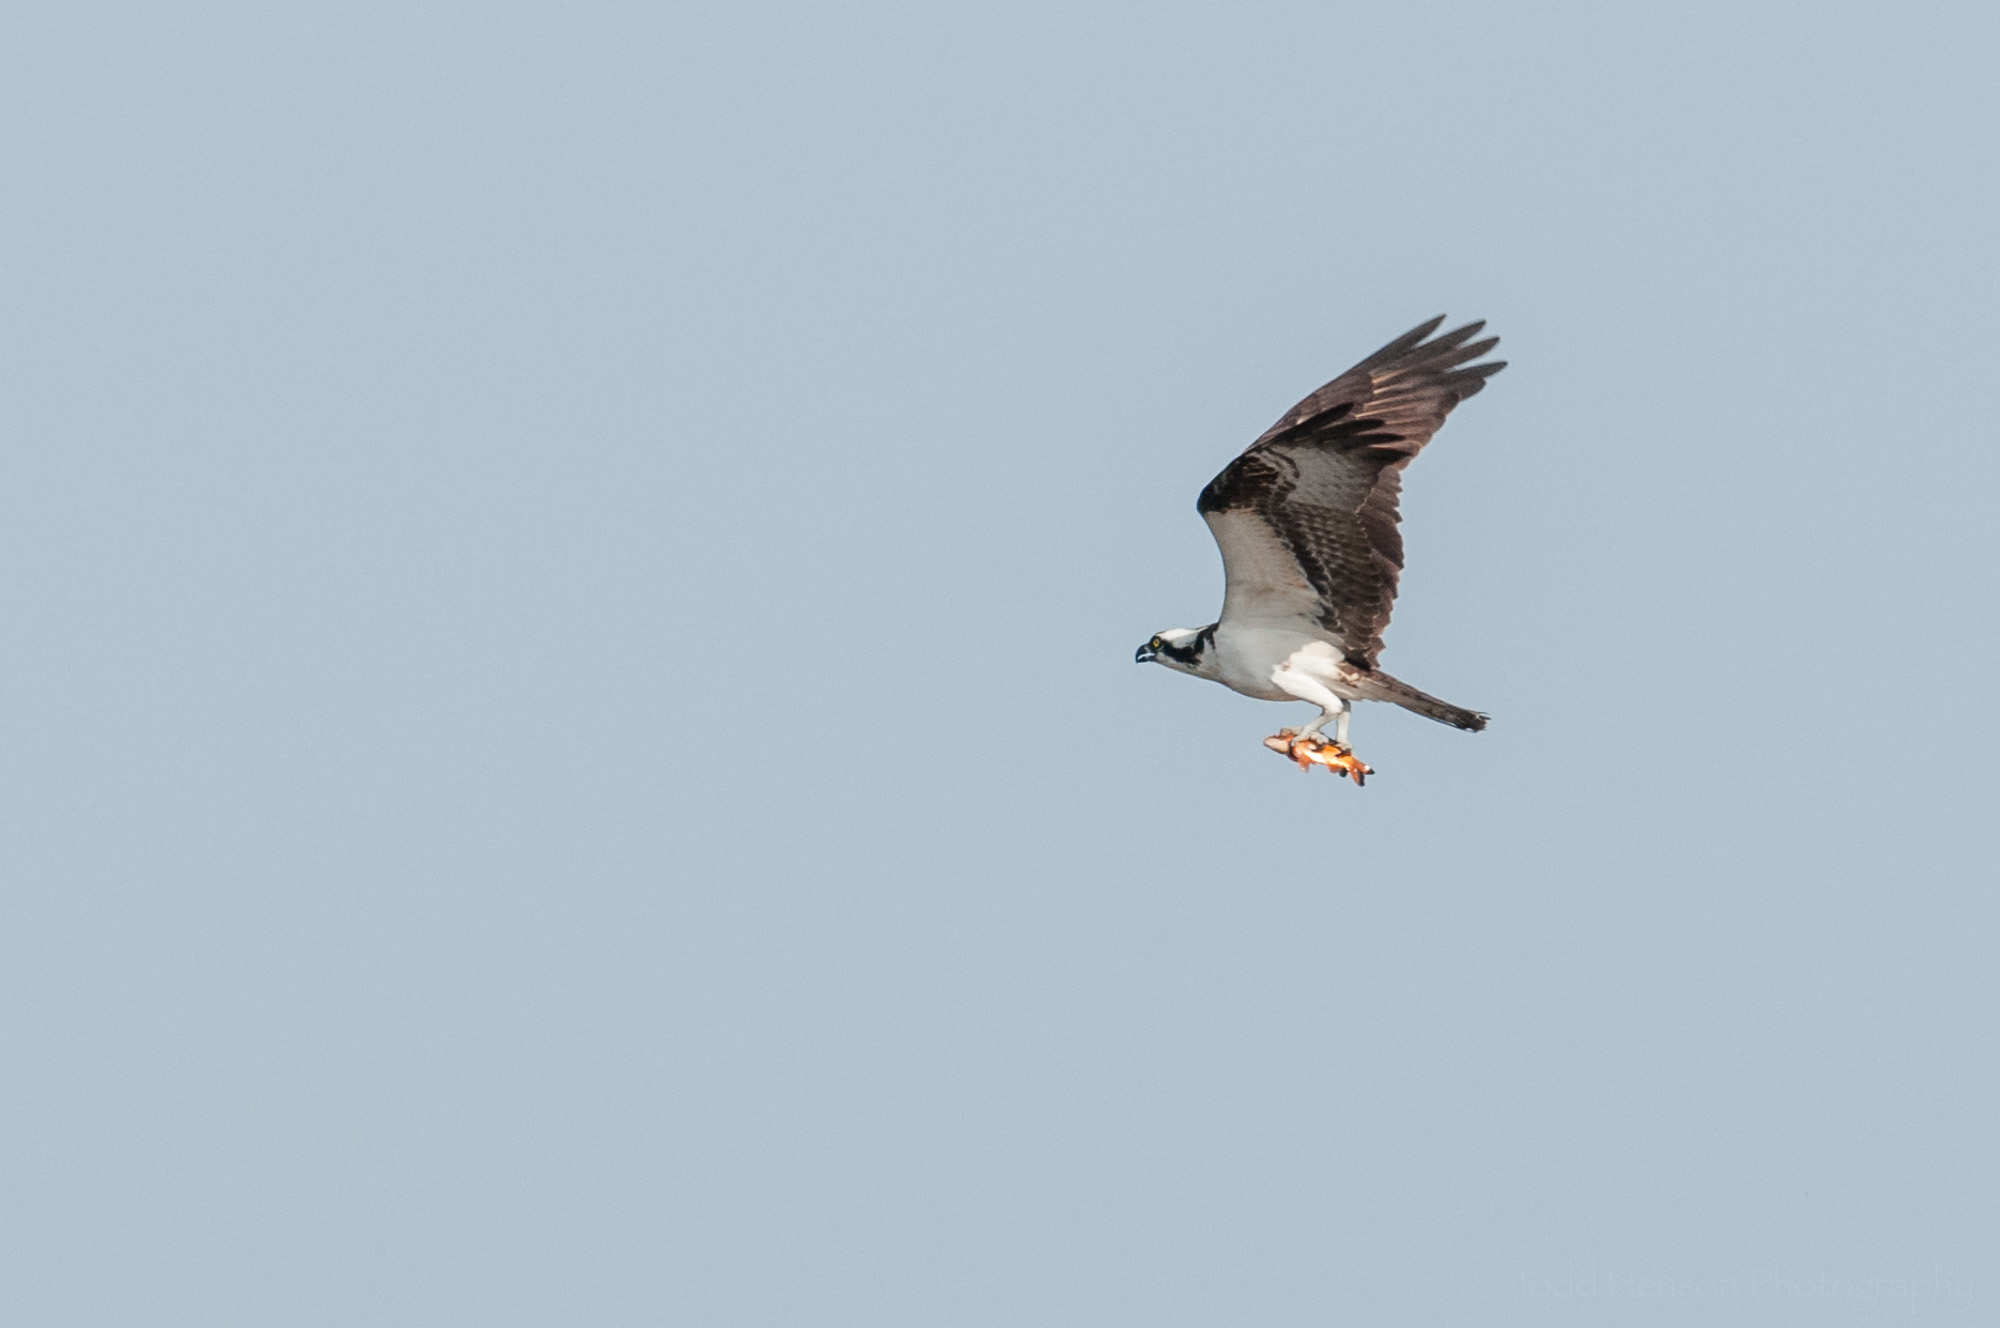 Osprey flying away with fish in talons